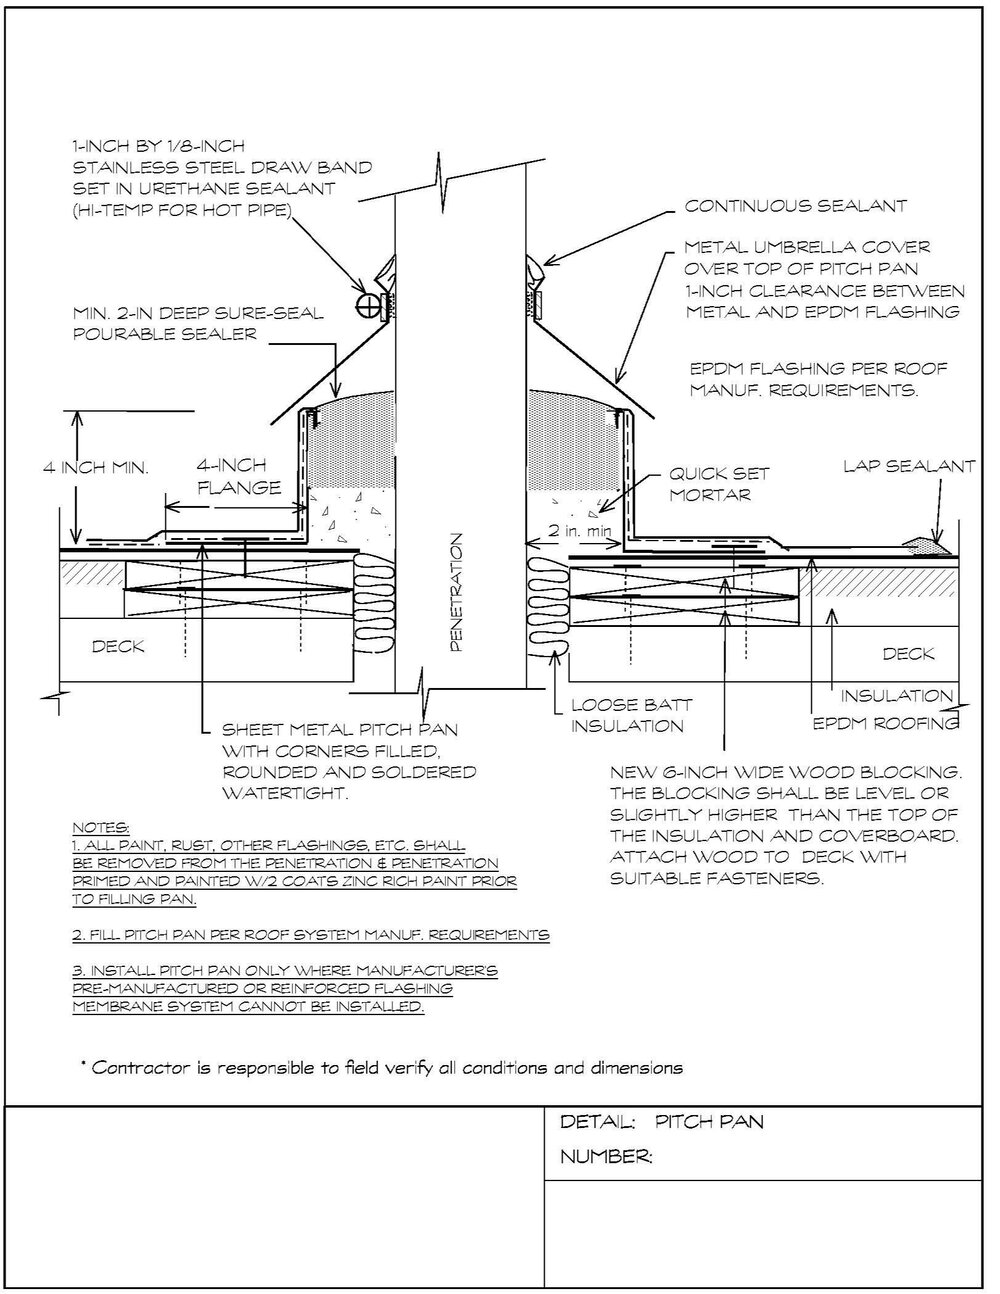 Construction detail for a pitch pan to be installed on an EPDM roof.